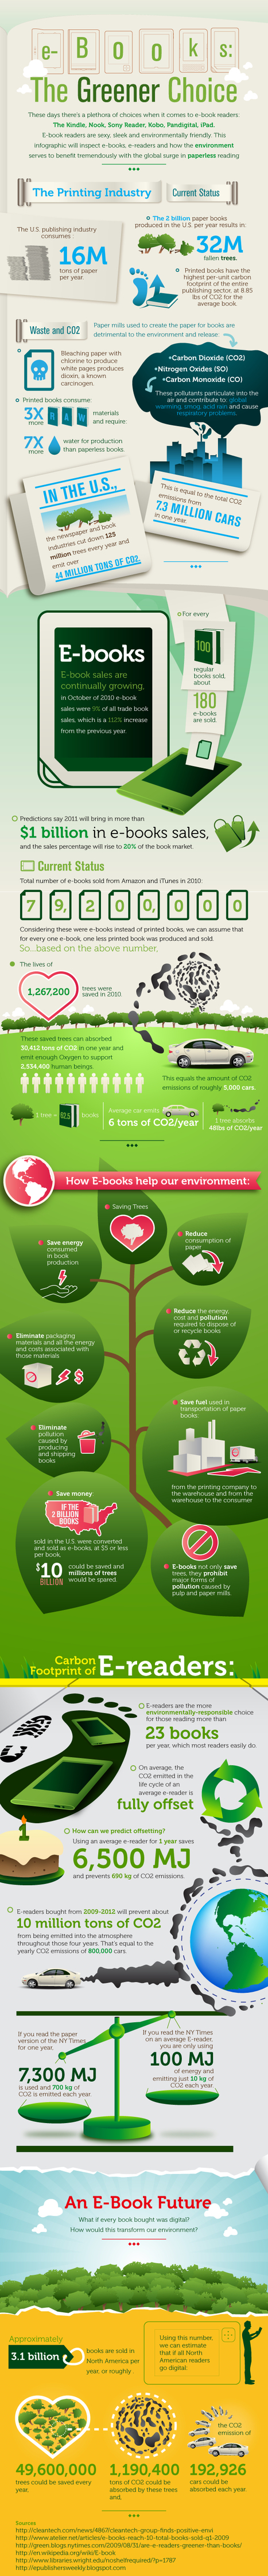 E-books: The Greener Choice | Moodle and Web 2.0 | Scoop.it